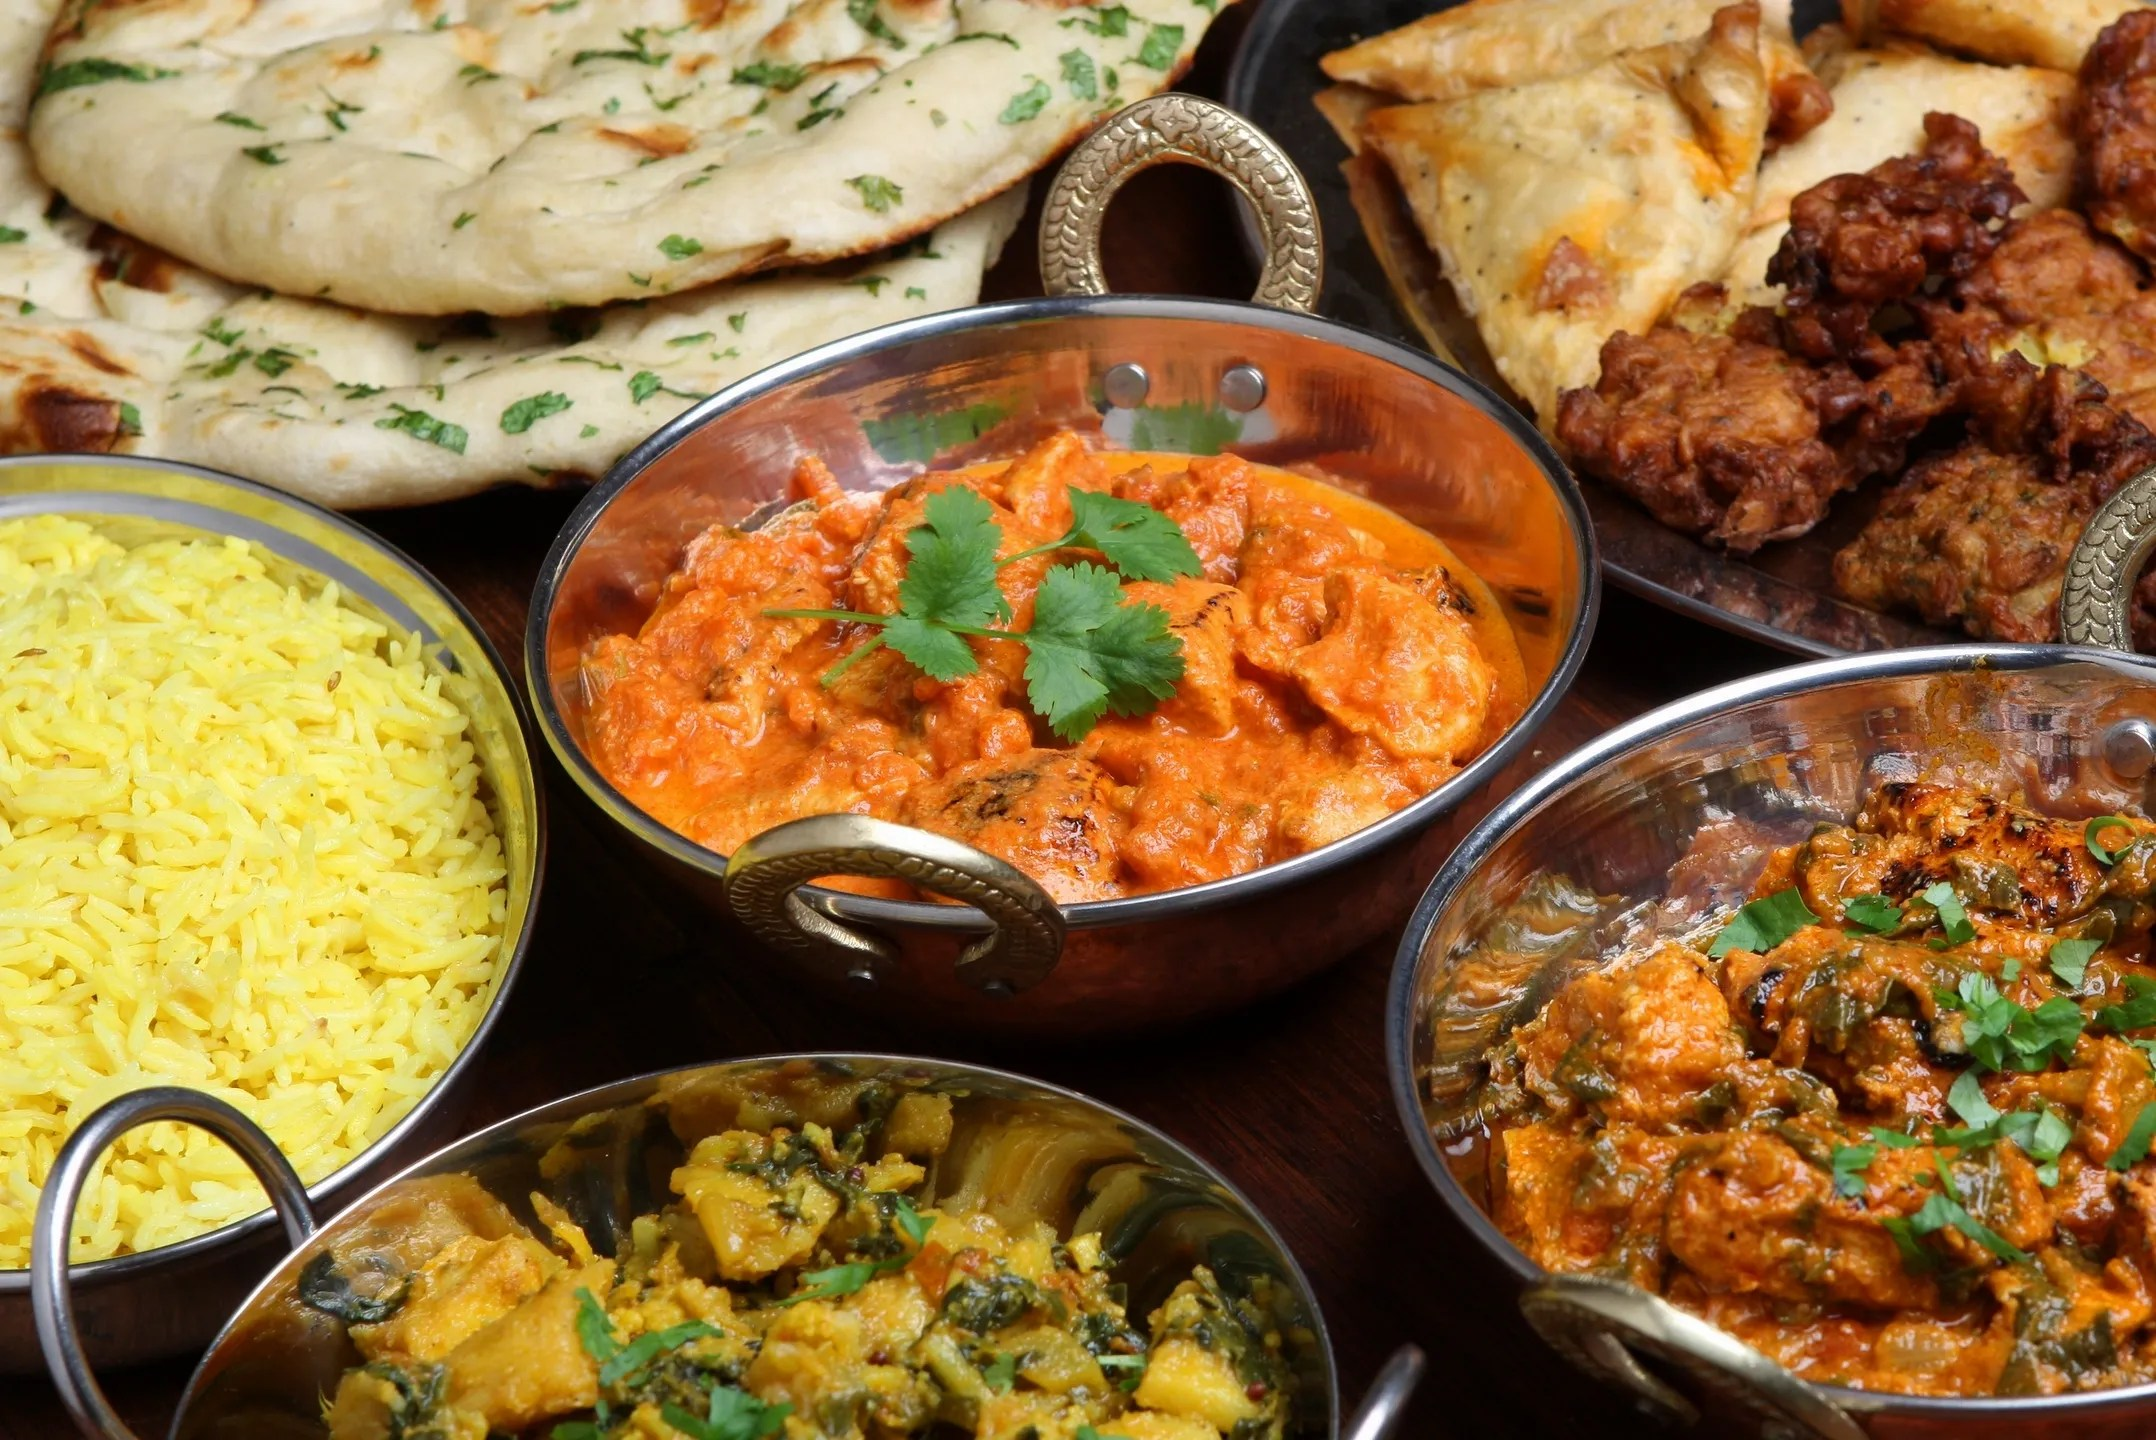 Cuisine India Indian Restaurant The Maharaja Cuisine Of India